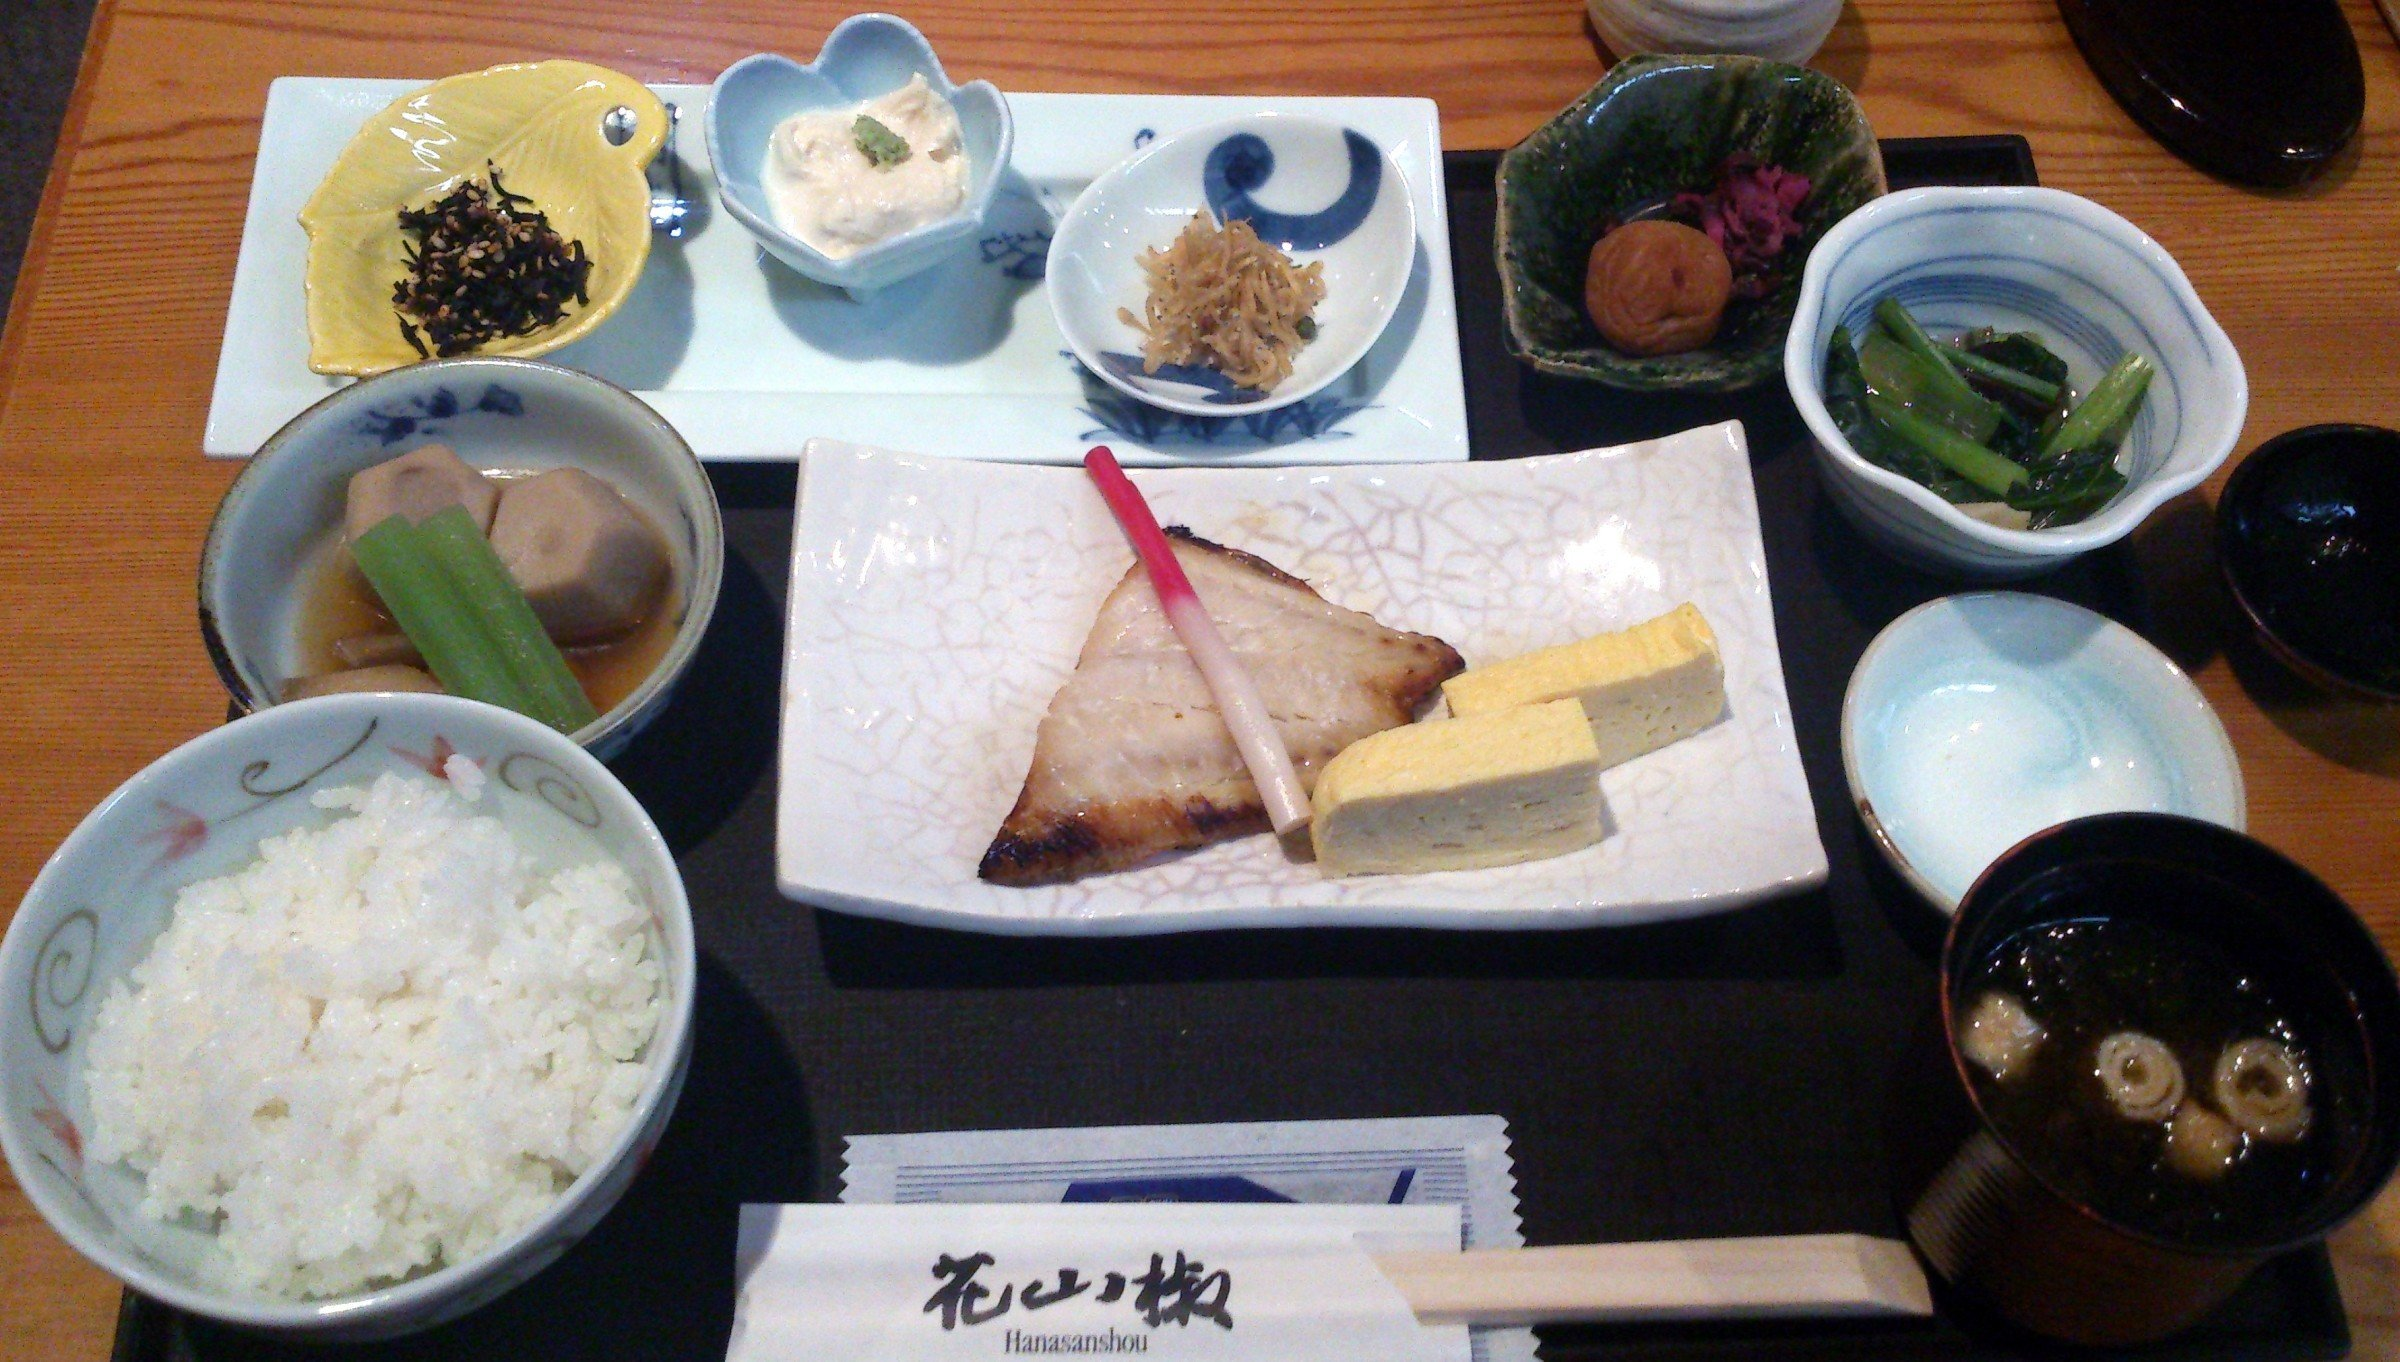 A Japanese style breakfast - a perfect start to the day